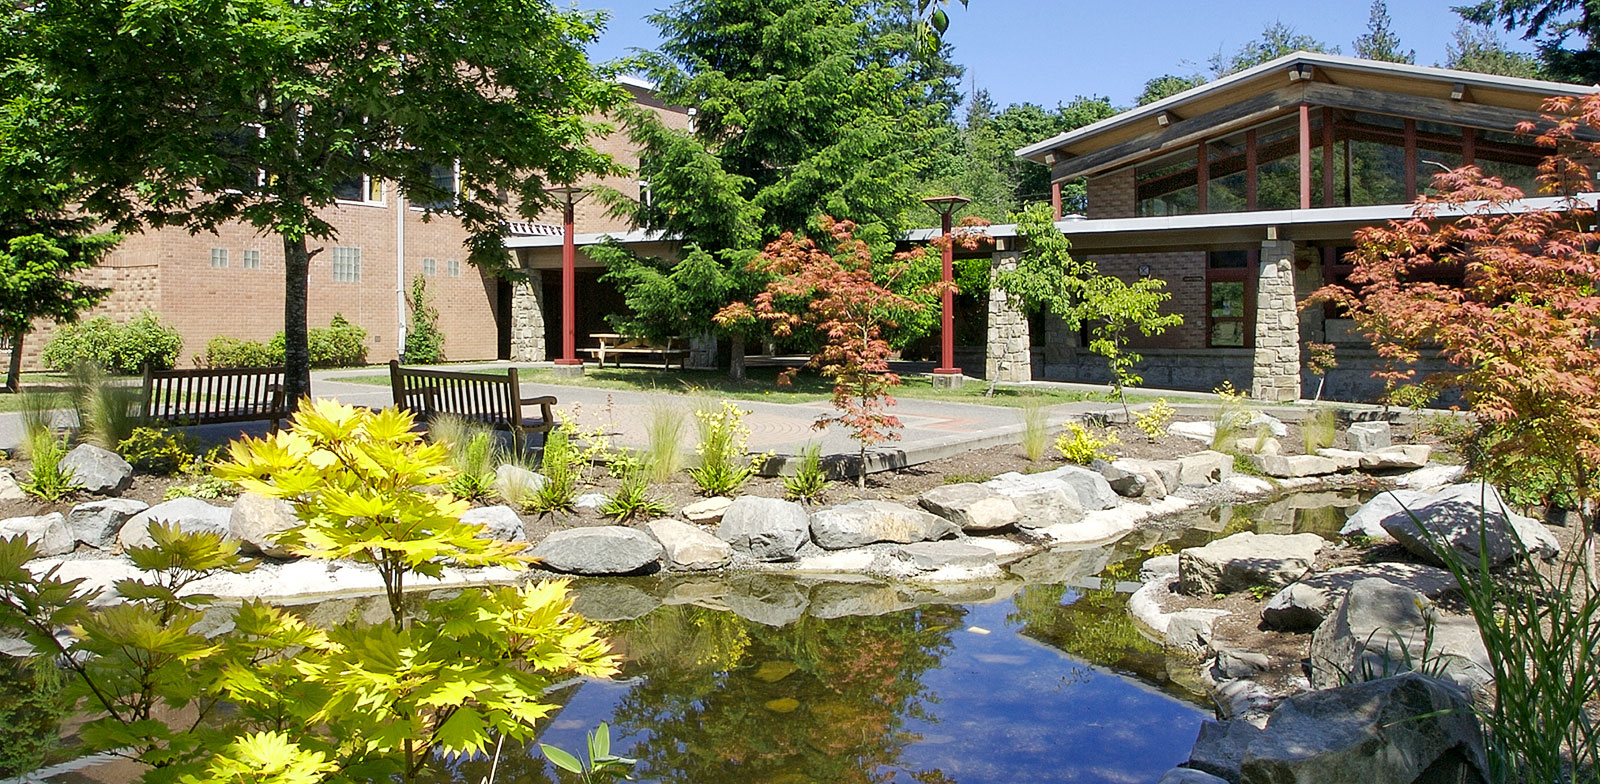 A campus courtyard at Gulf Islands Secondary School